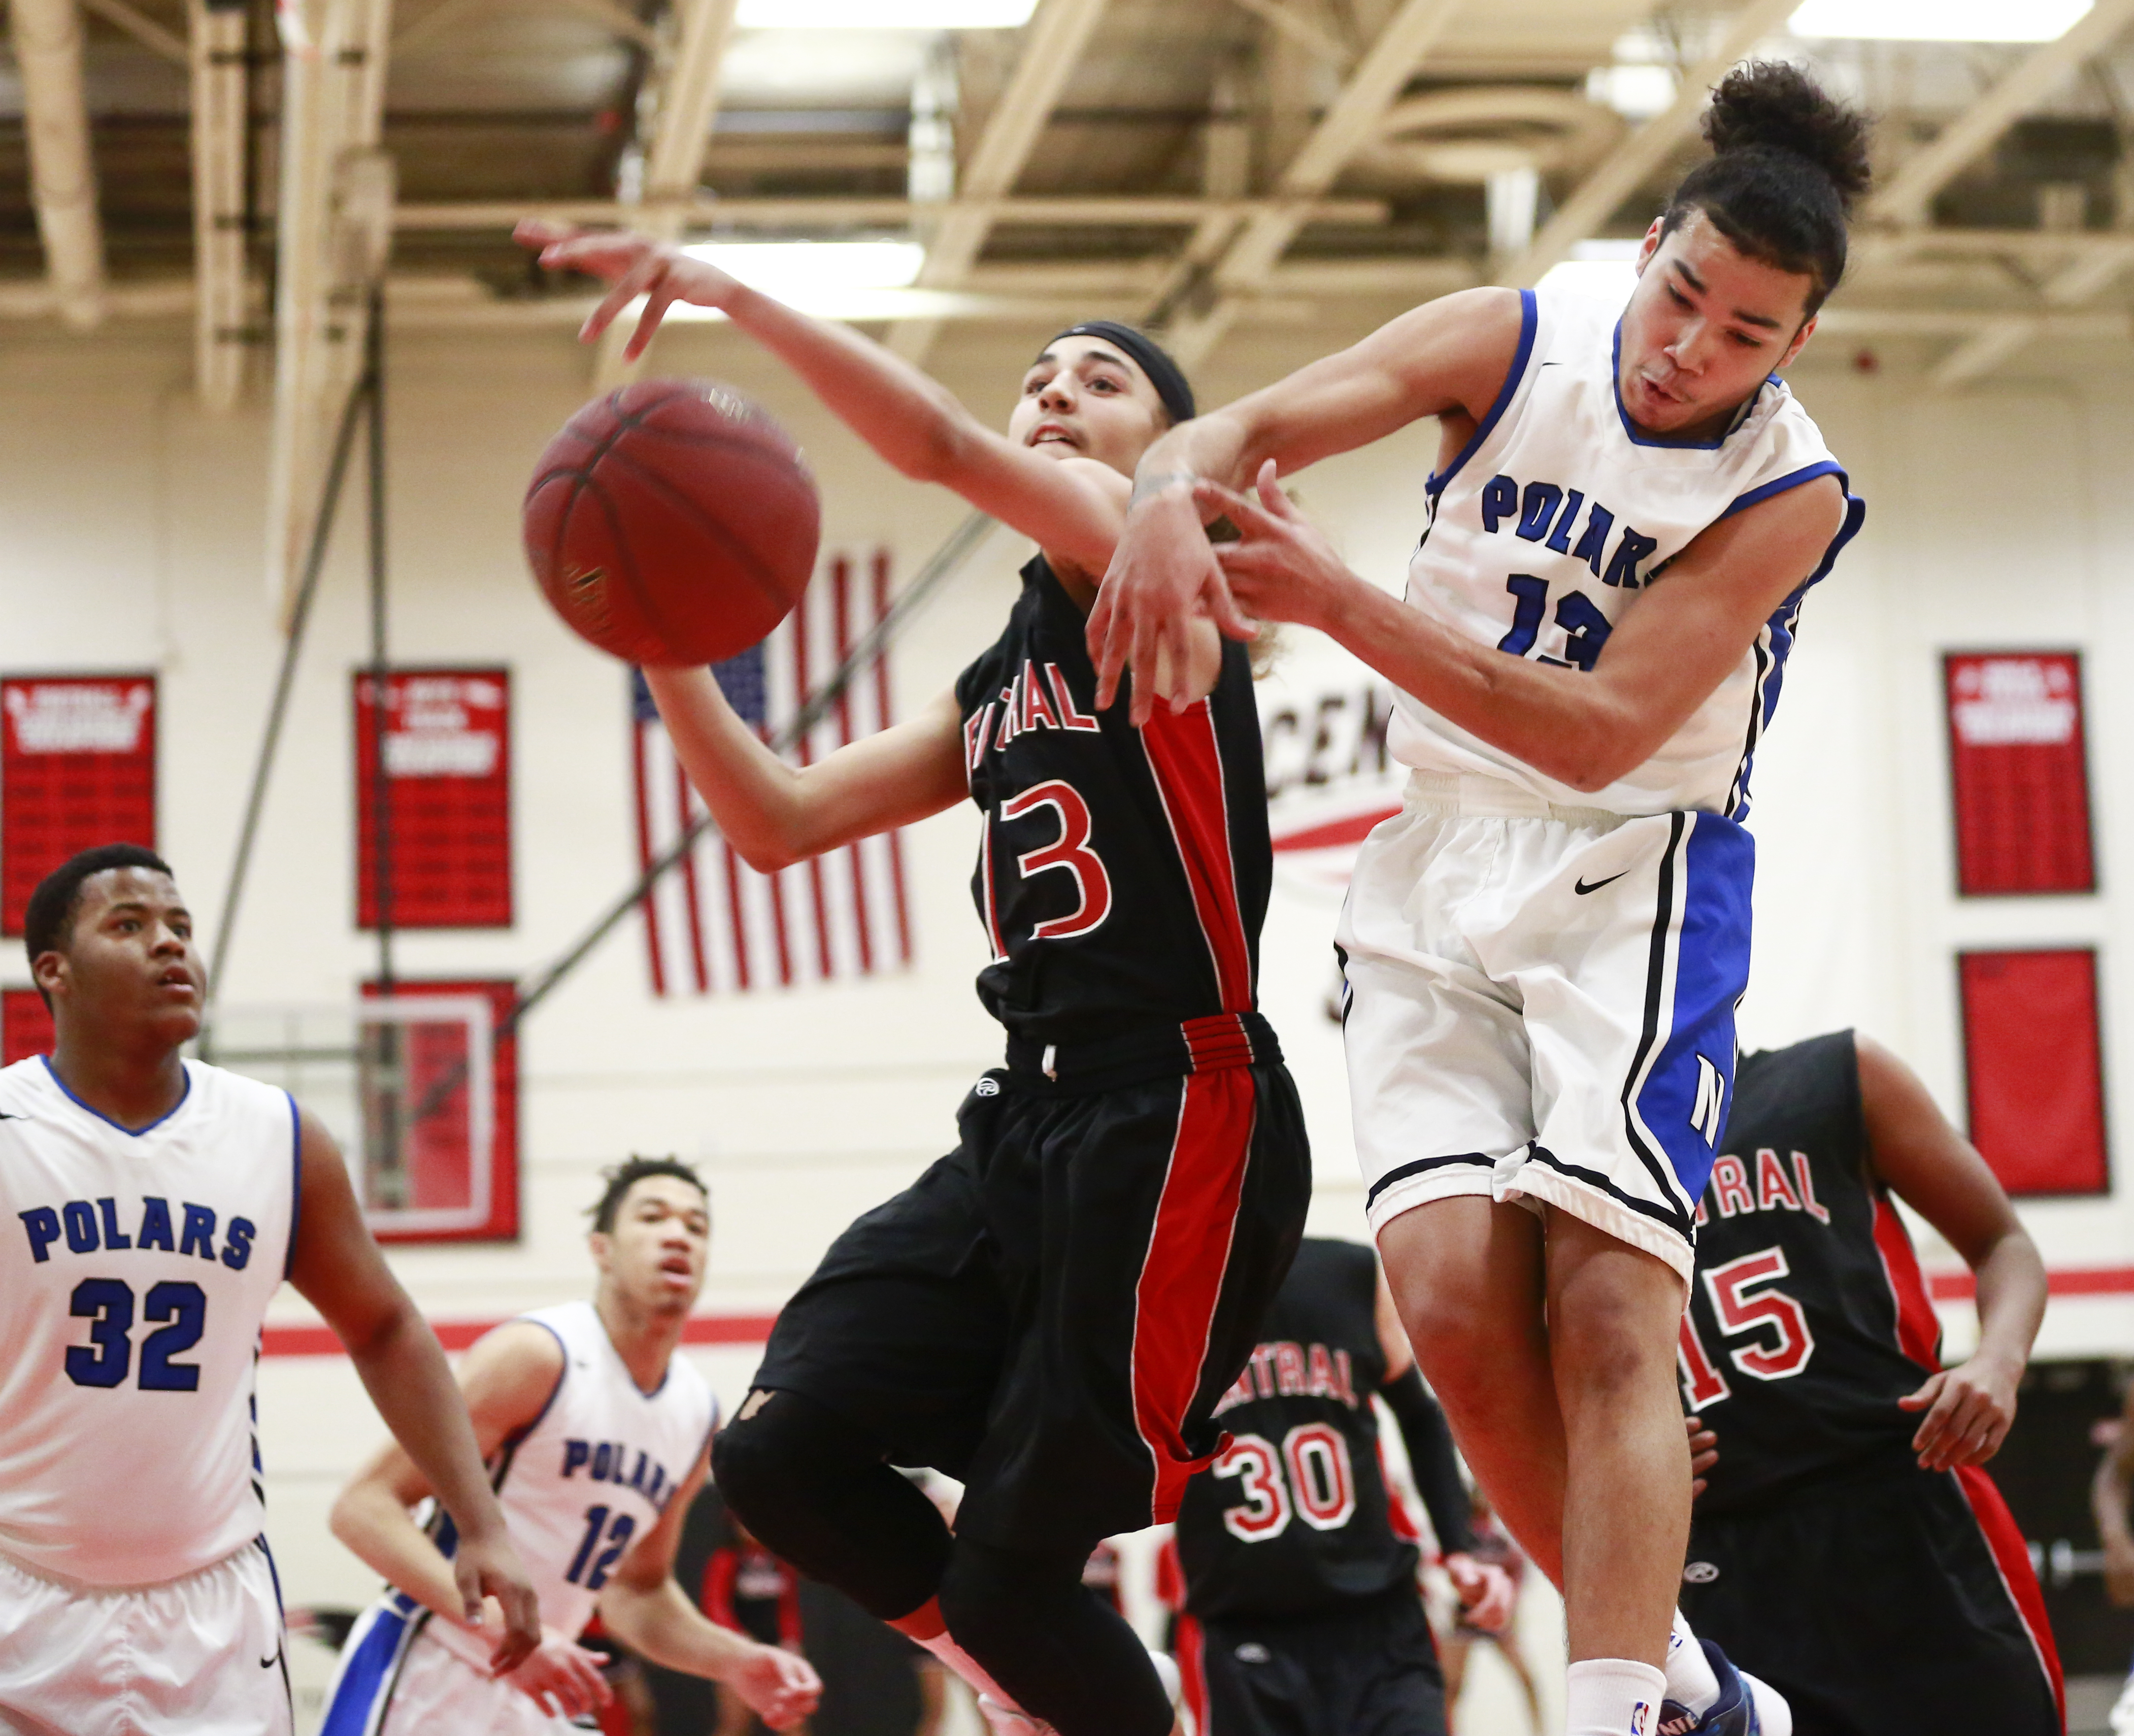 Minneapolis North's Patrick Dembley (13) knocks the ball away as St. Paul Central's Re-Twan Balenger (13) was attempting a slam dunk in the Polars' 83-71 road victory Thursday night. Photo by Chris Juhn